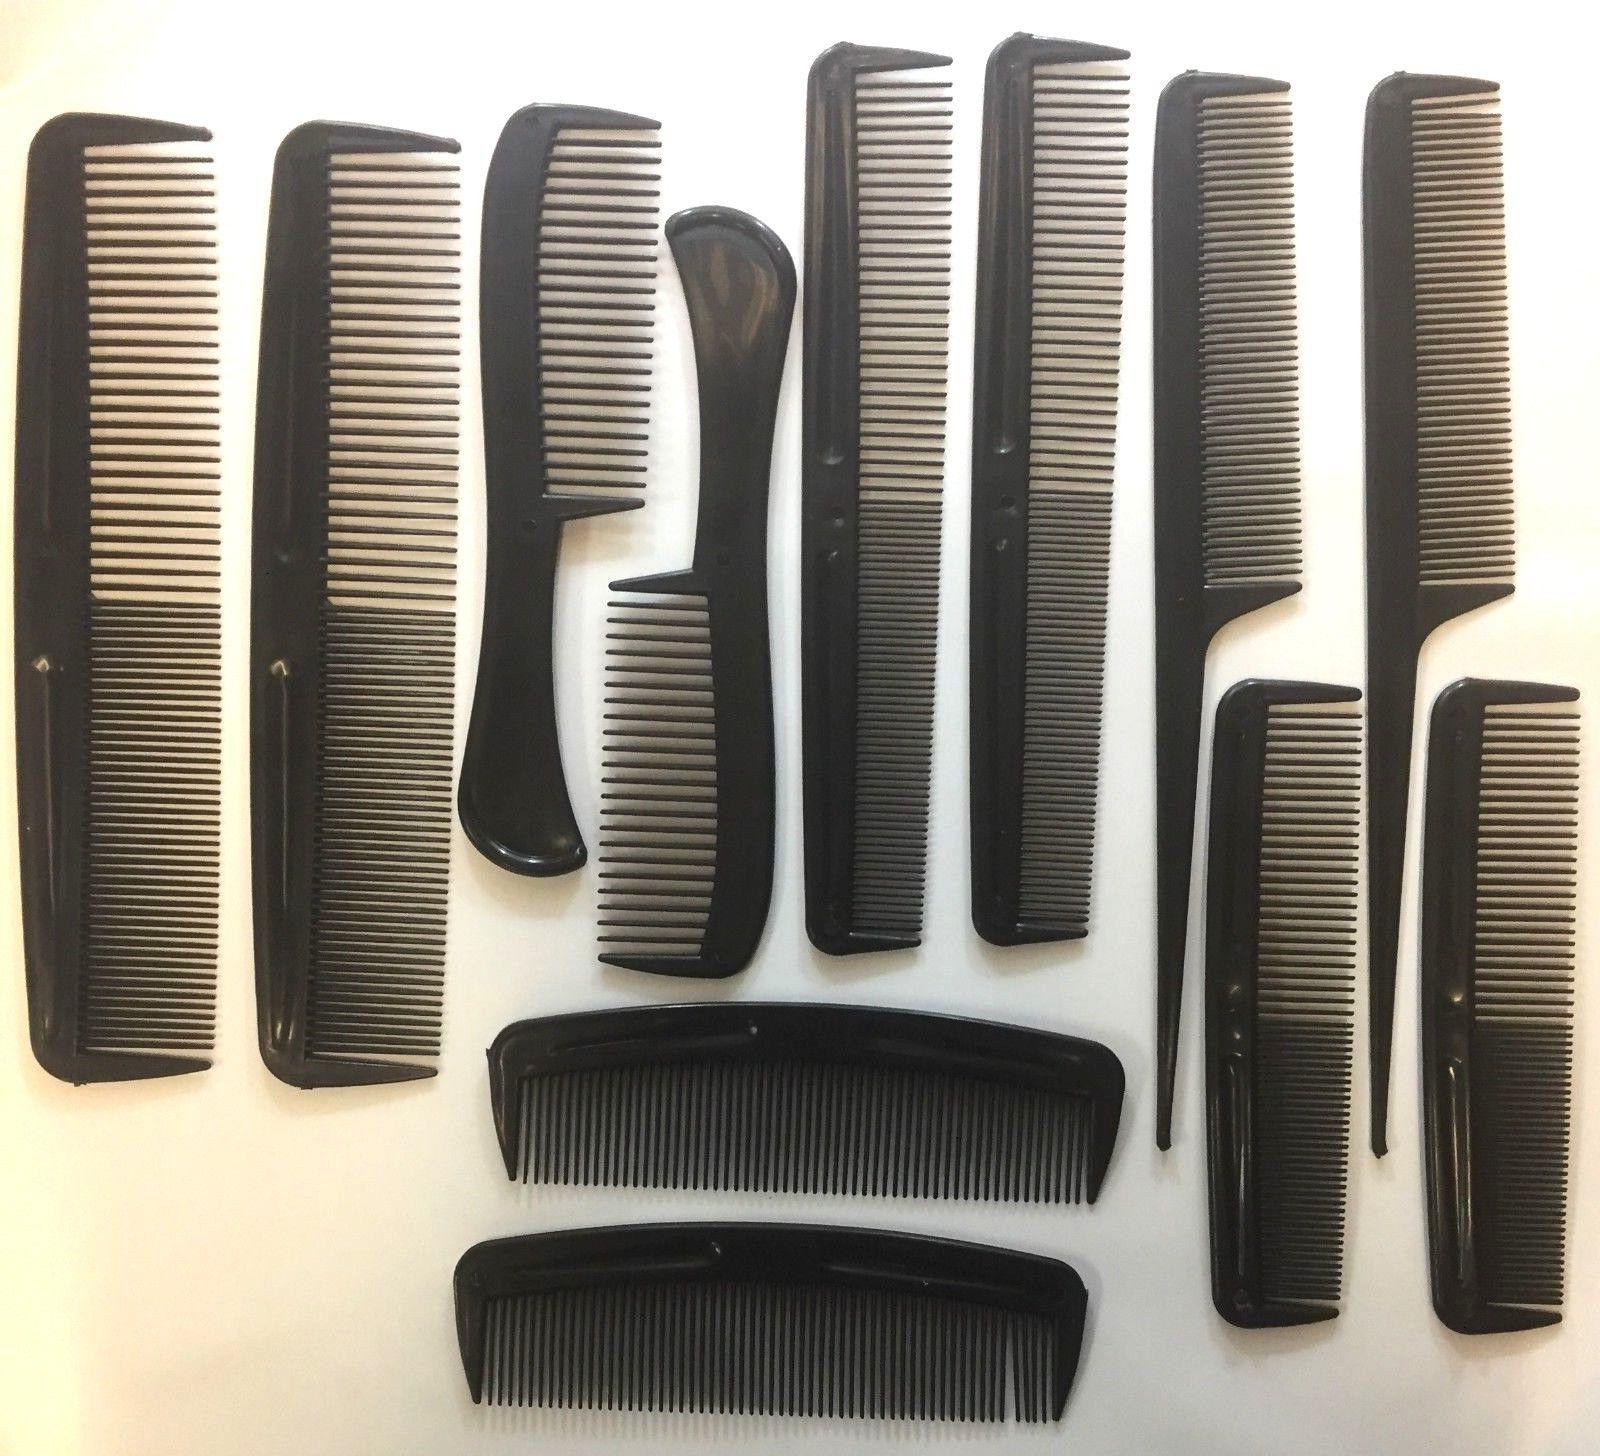 12 pc pro salon hair styling hairdressing